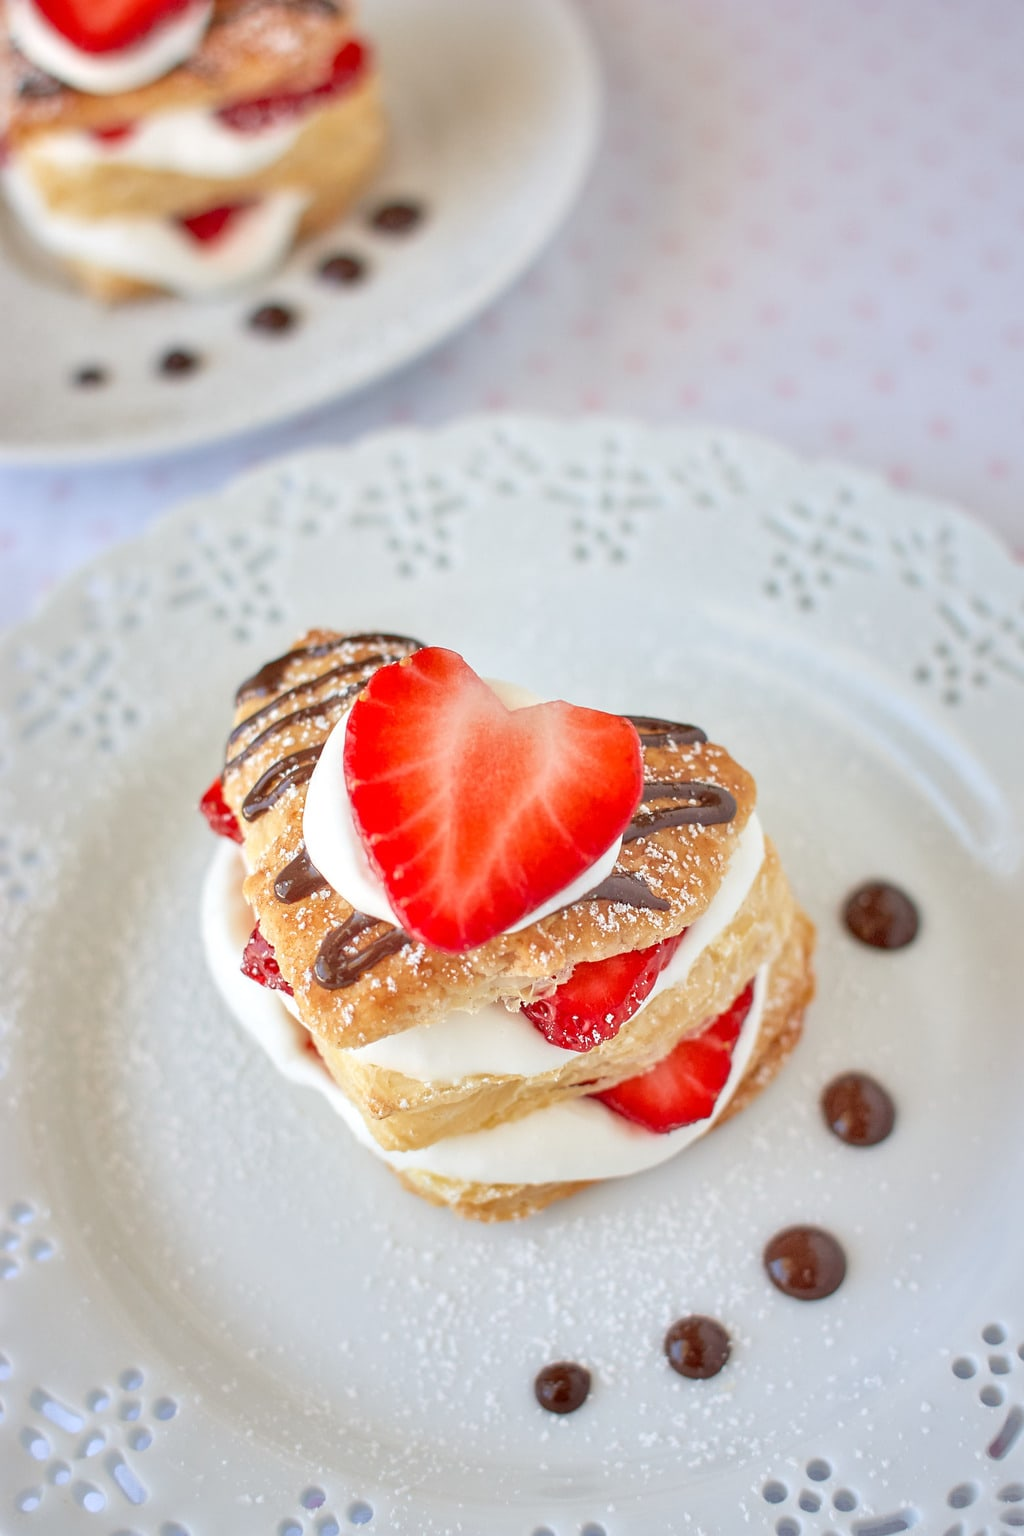 Heart shaped strawberry napoleon dessert with chocolate sauce, strawberries, and whipped cream on a plate.